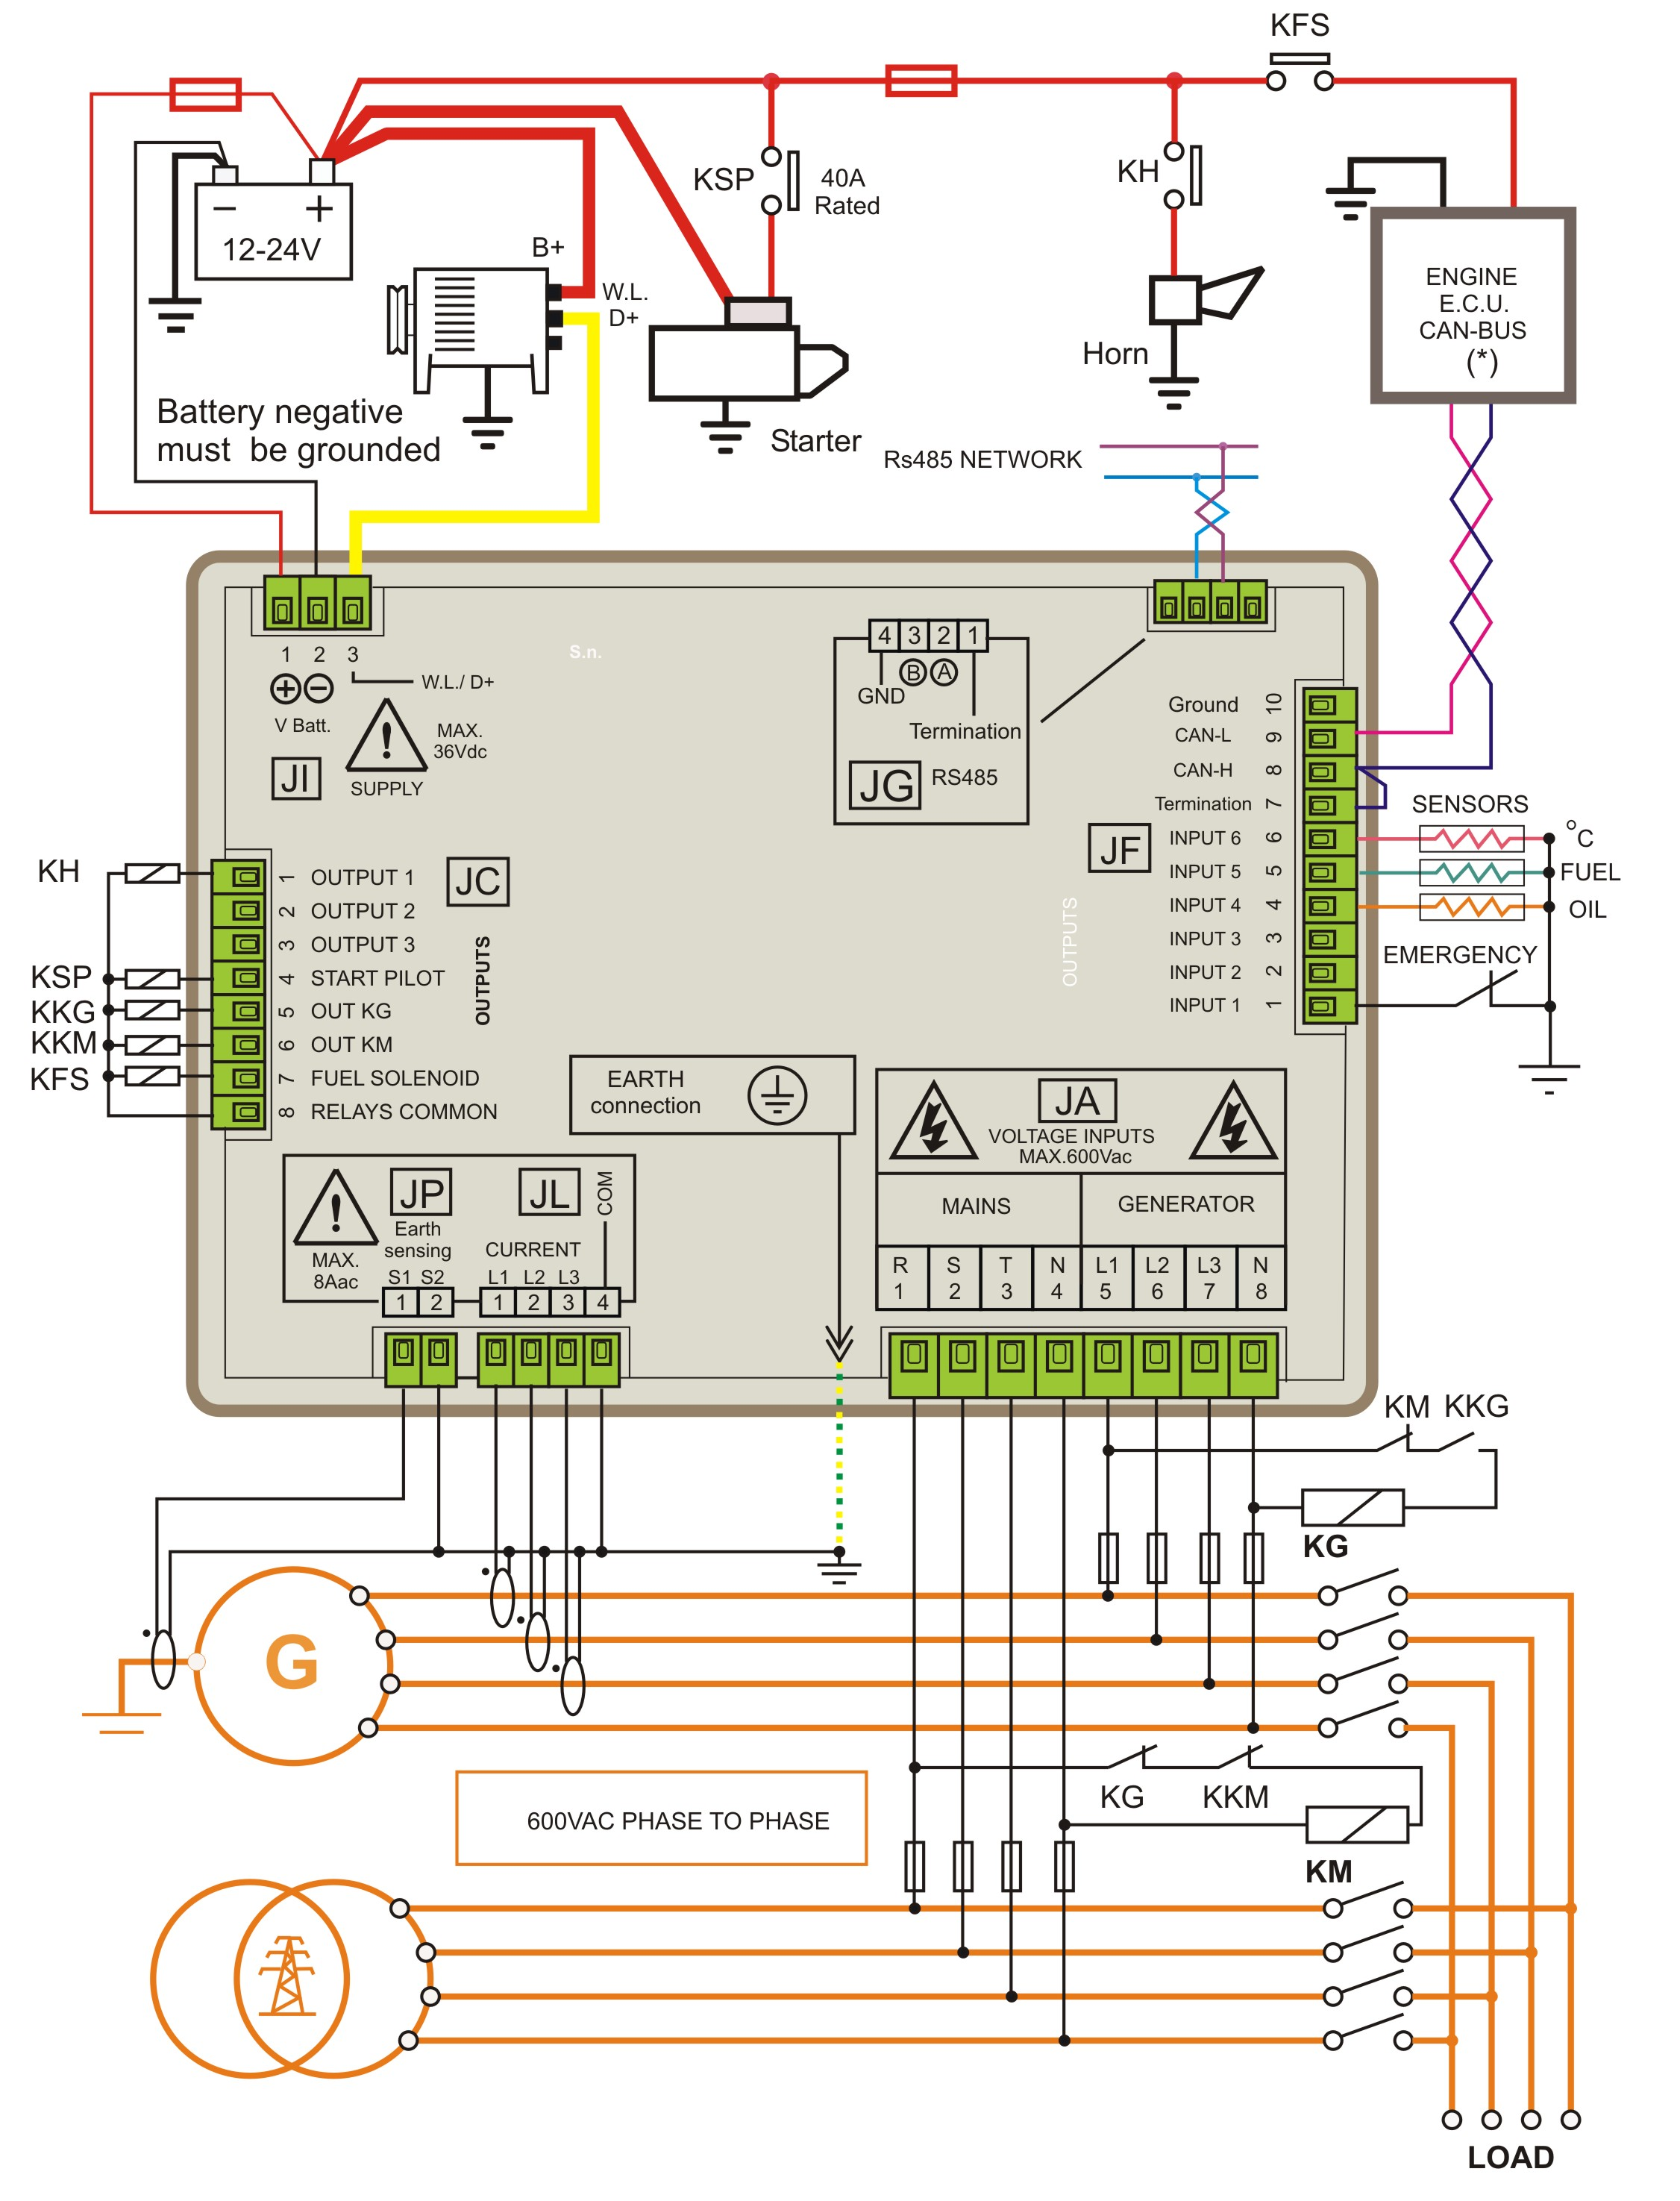 AMF Control Panel Circuit Diagram PDF stamford generator wiring diagram pdf wiring diagram stamford alternator wiring diagrams pdf at crackthecode.co